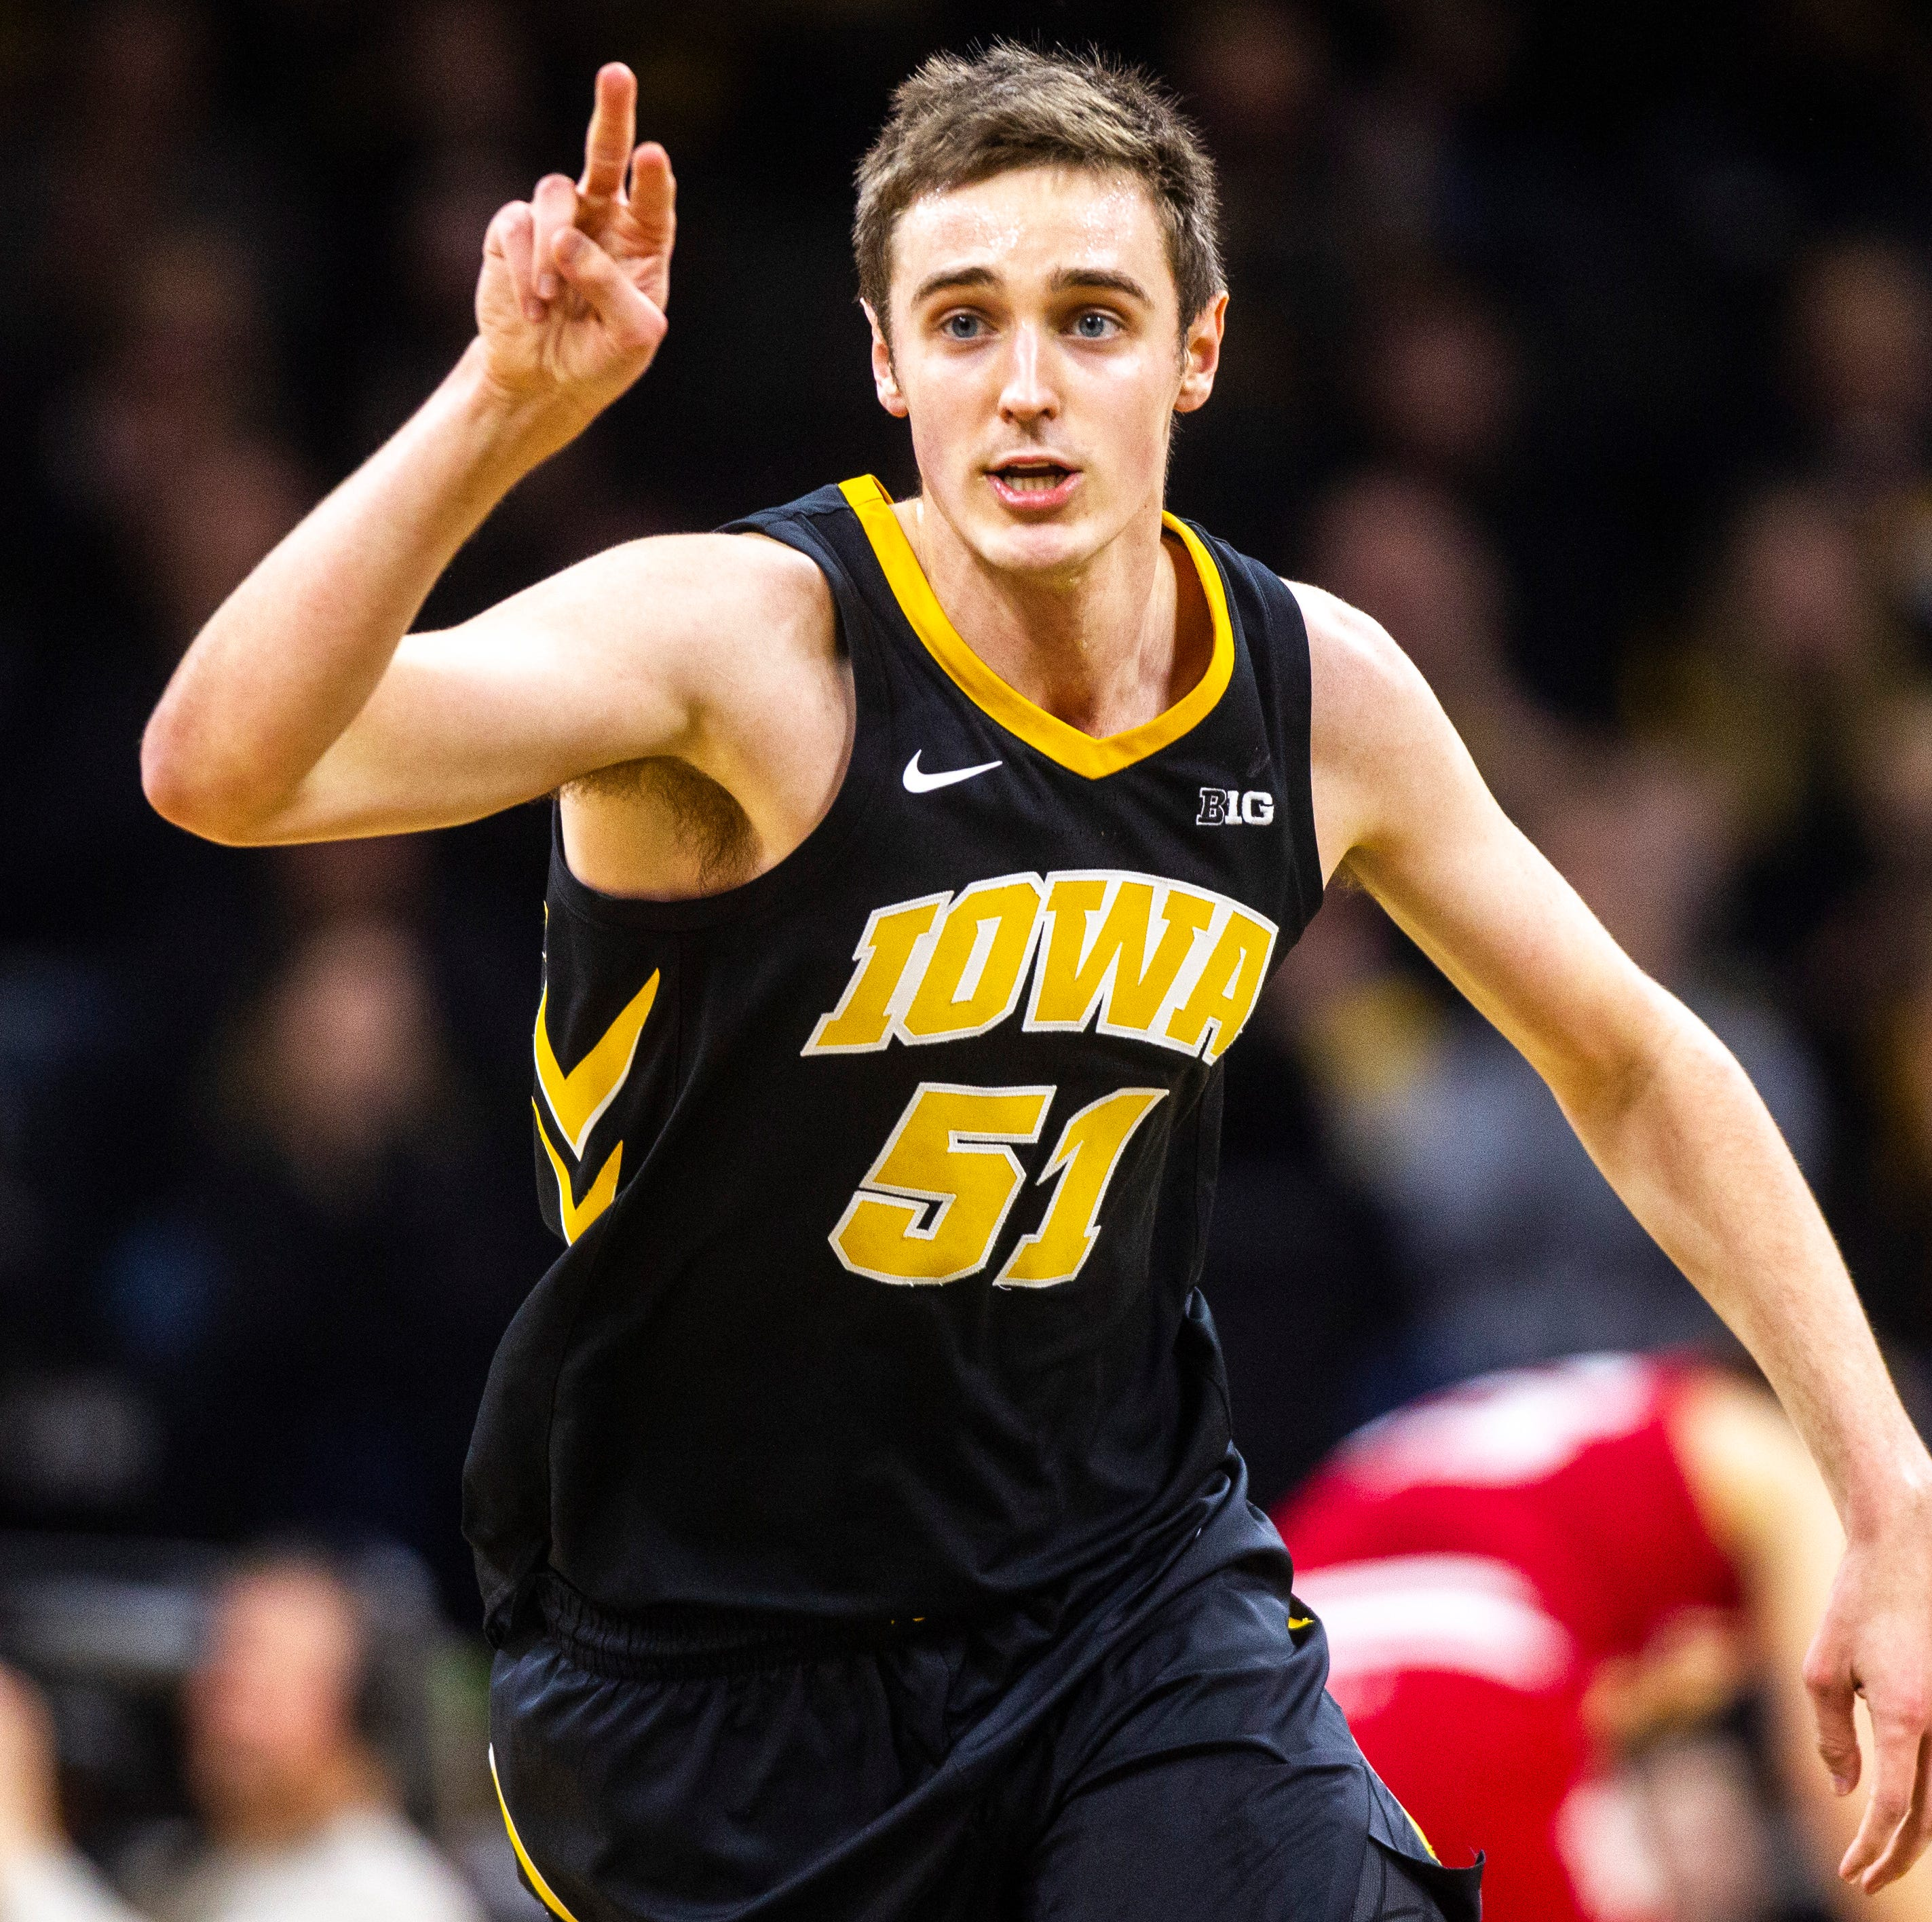 Appreciating the remarkable and historic career of Iowa senior Nicholas Baer